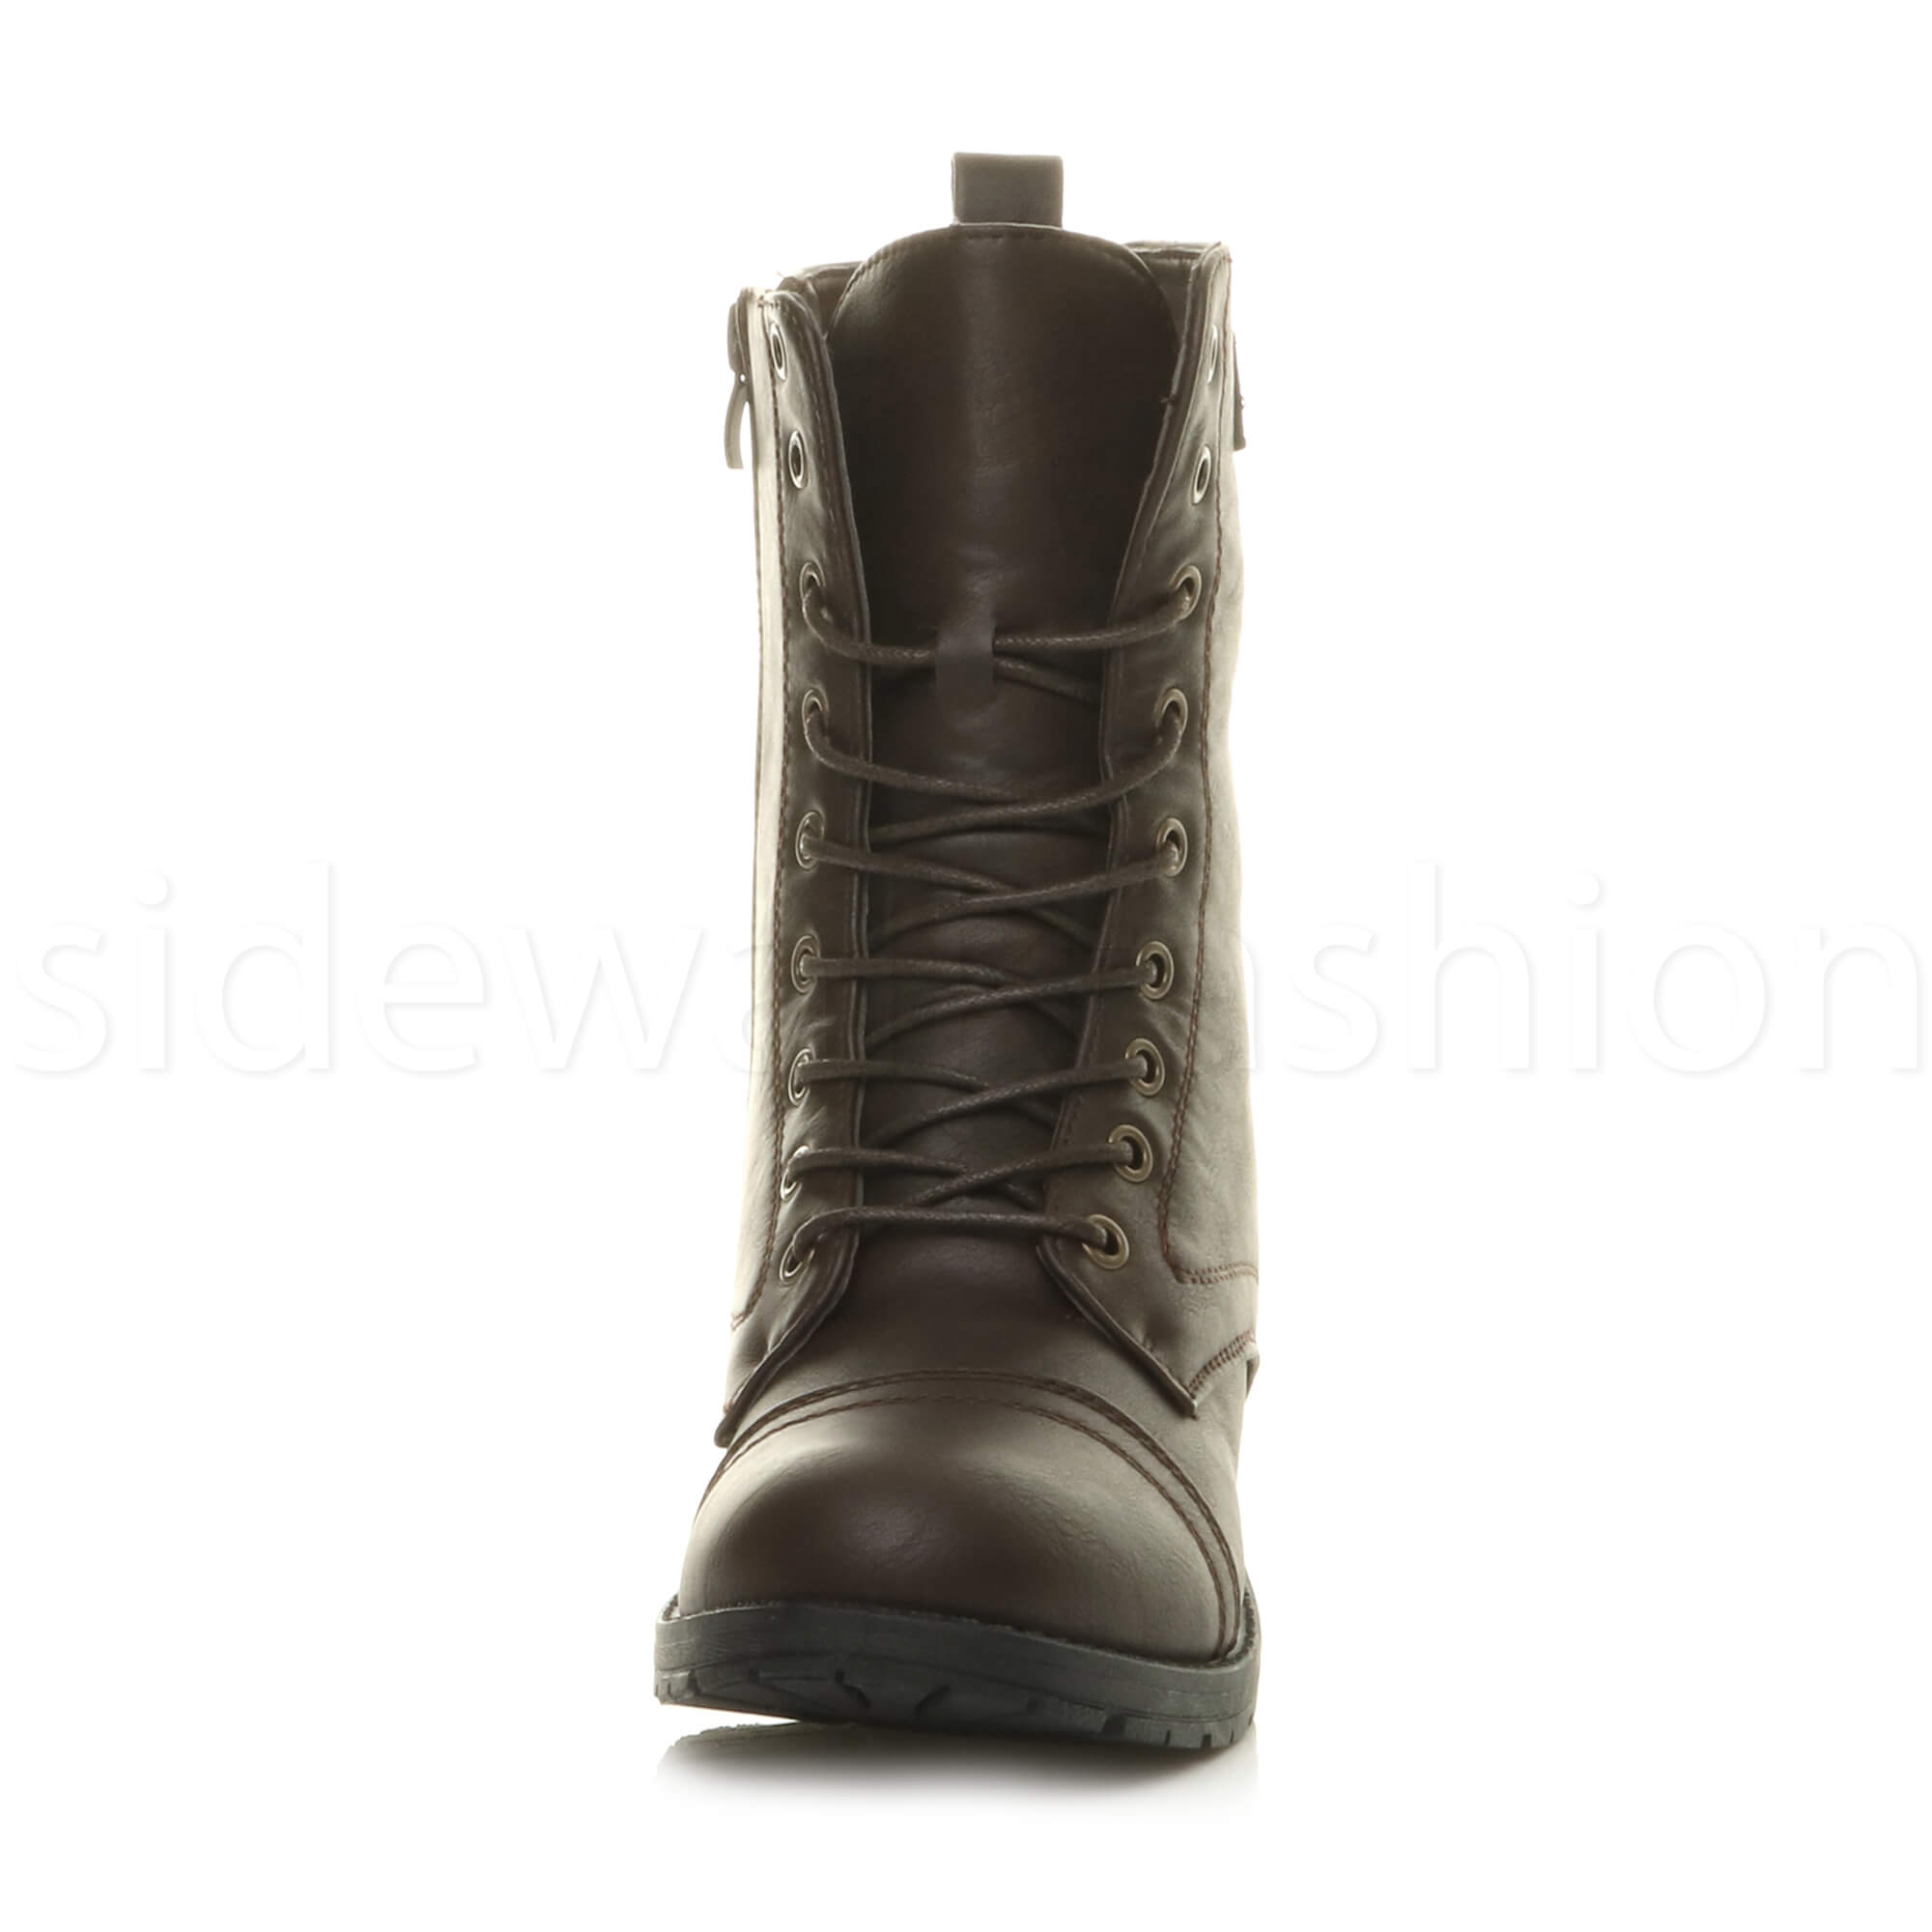 Womens-ladies-low-heel-flat-lace-up-zip-combat-biker-military-ankle-boots-size thumbnail 47